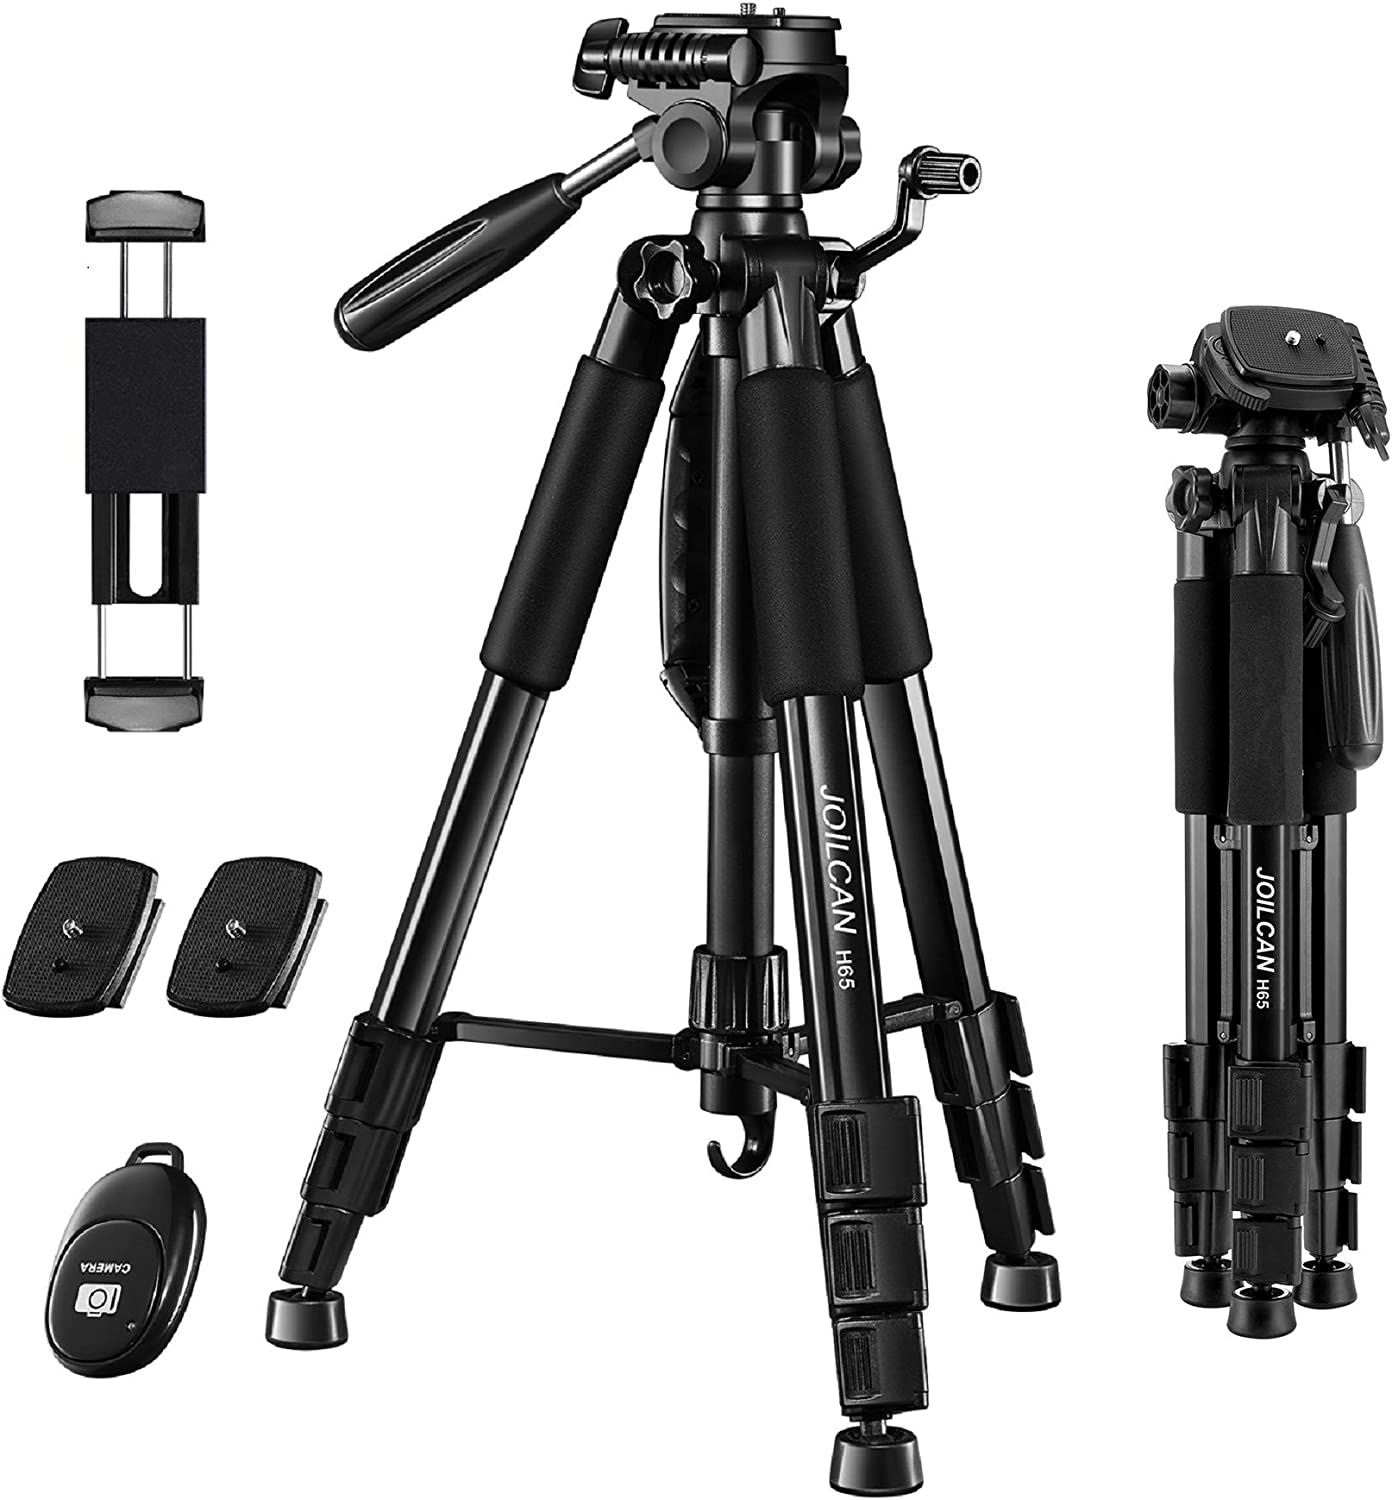 "JOILCAN 65""Camera Tripod for Canon Nikon Lightweight Aluminum Travel DSLR Camera Stand 11 lbs Load with Universal Phone/Tablet Mount, 2PC Quick Plates(Black) : Camera & Photo"